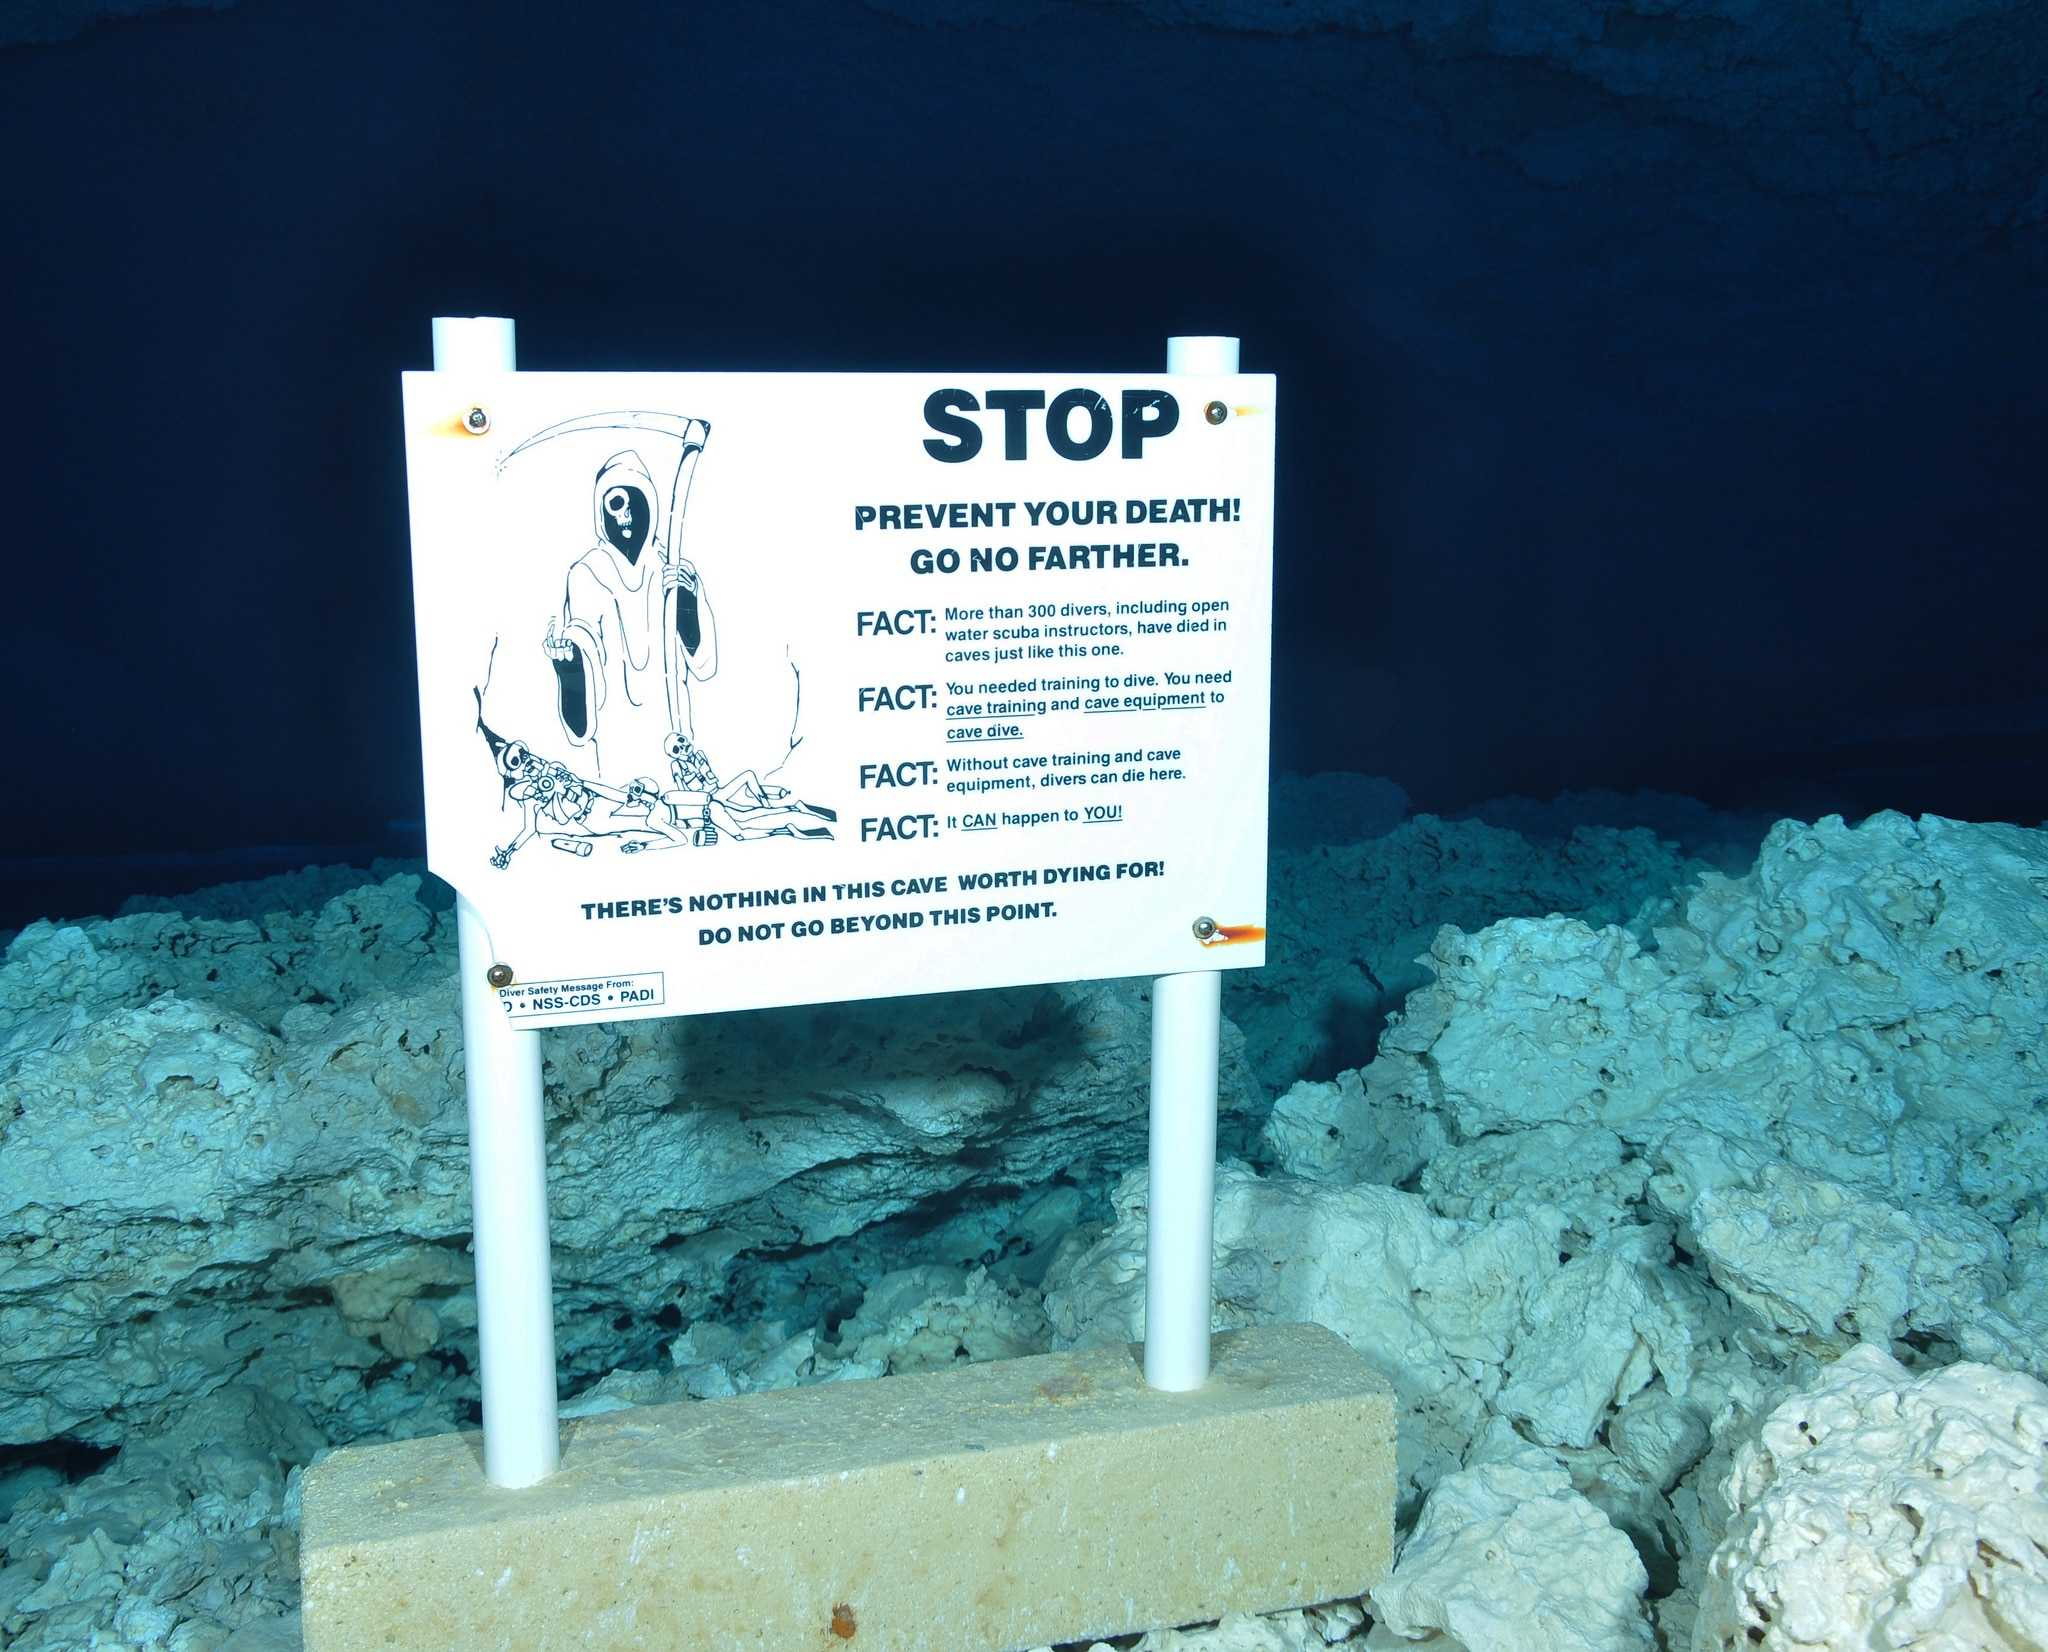 cave diving warning sign